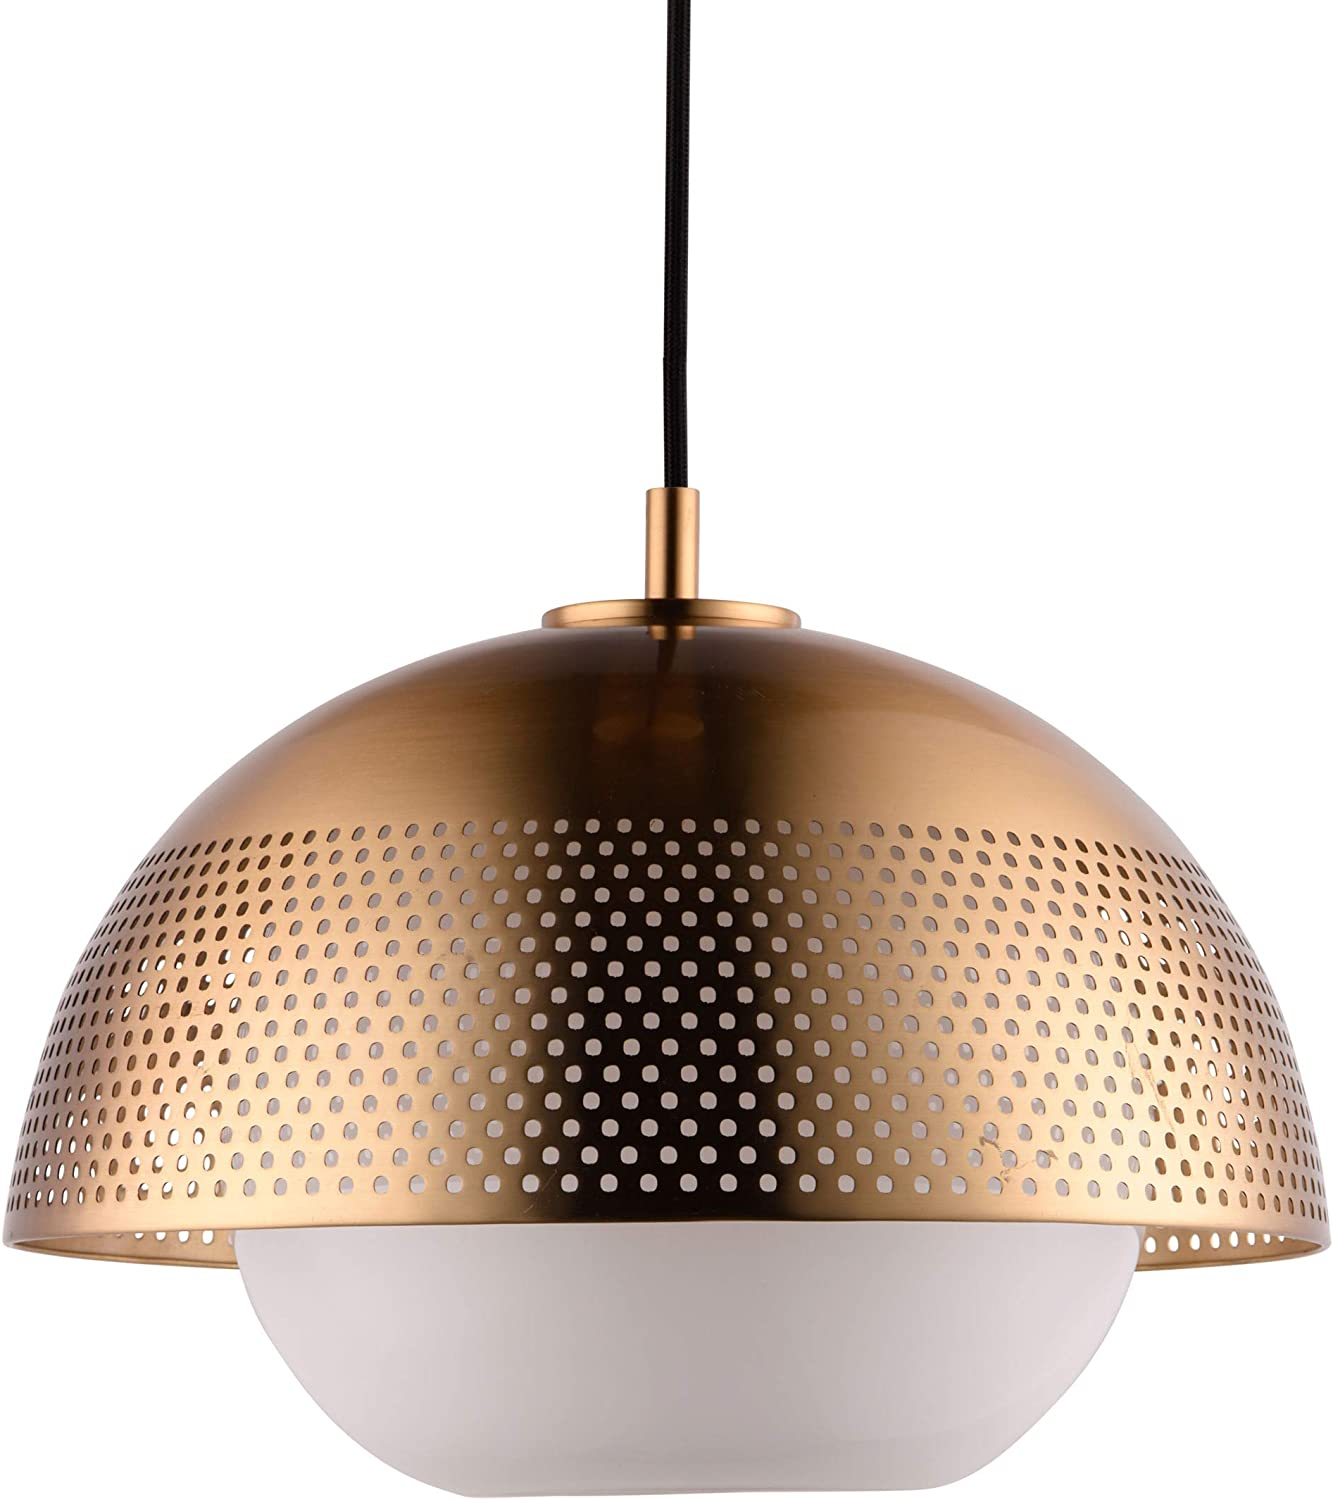 Rivet Mid-Century Modern Ceiling Hanging Pendant Fixture with Light Bulb – 14.25 x 14.25 x 11.25 Inches, 12-120 Inch Cord, Satin Brass